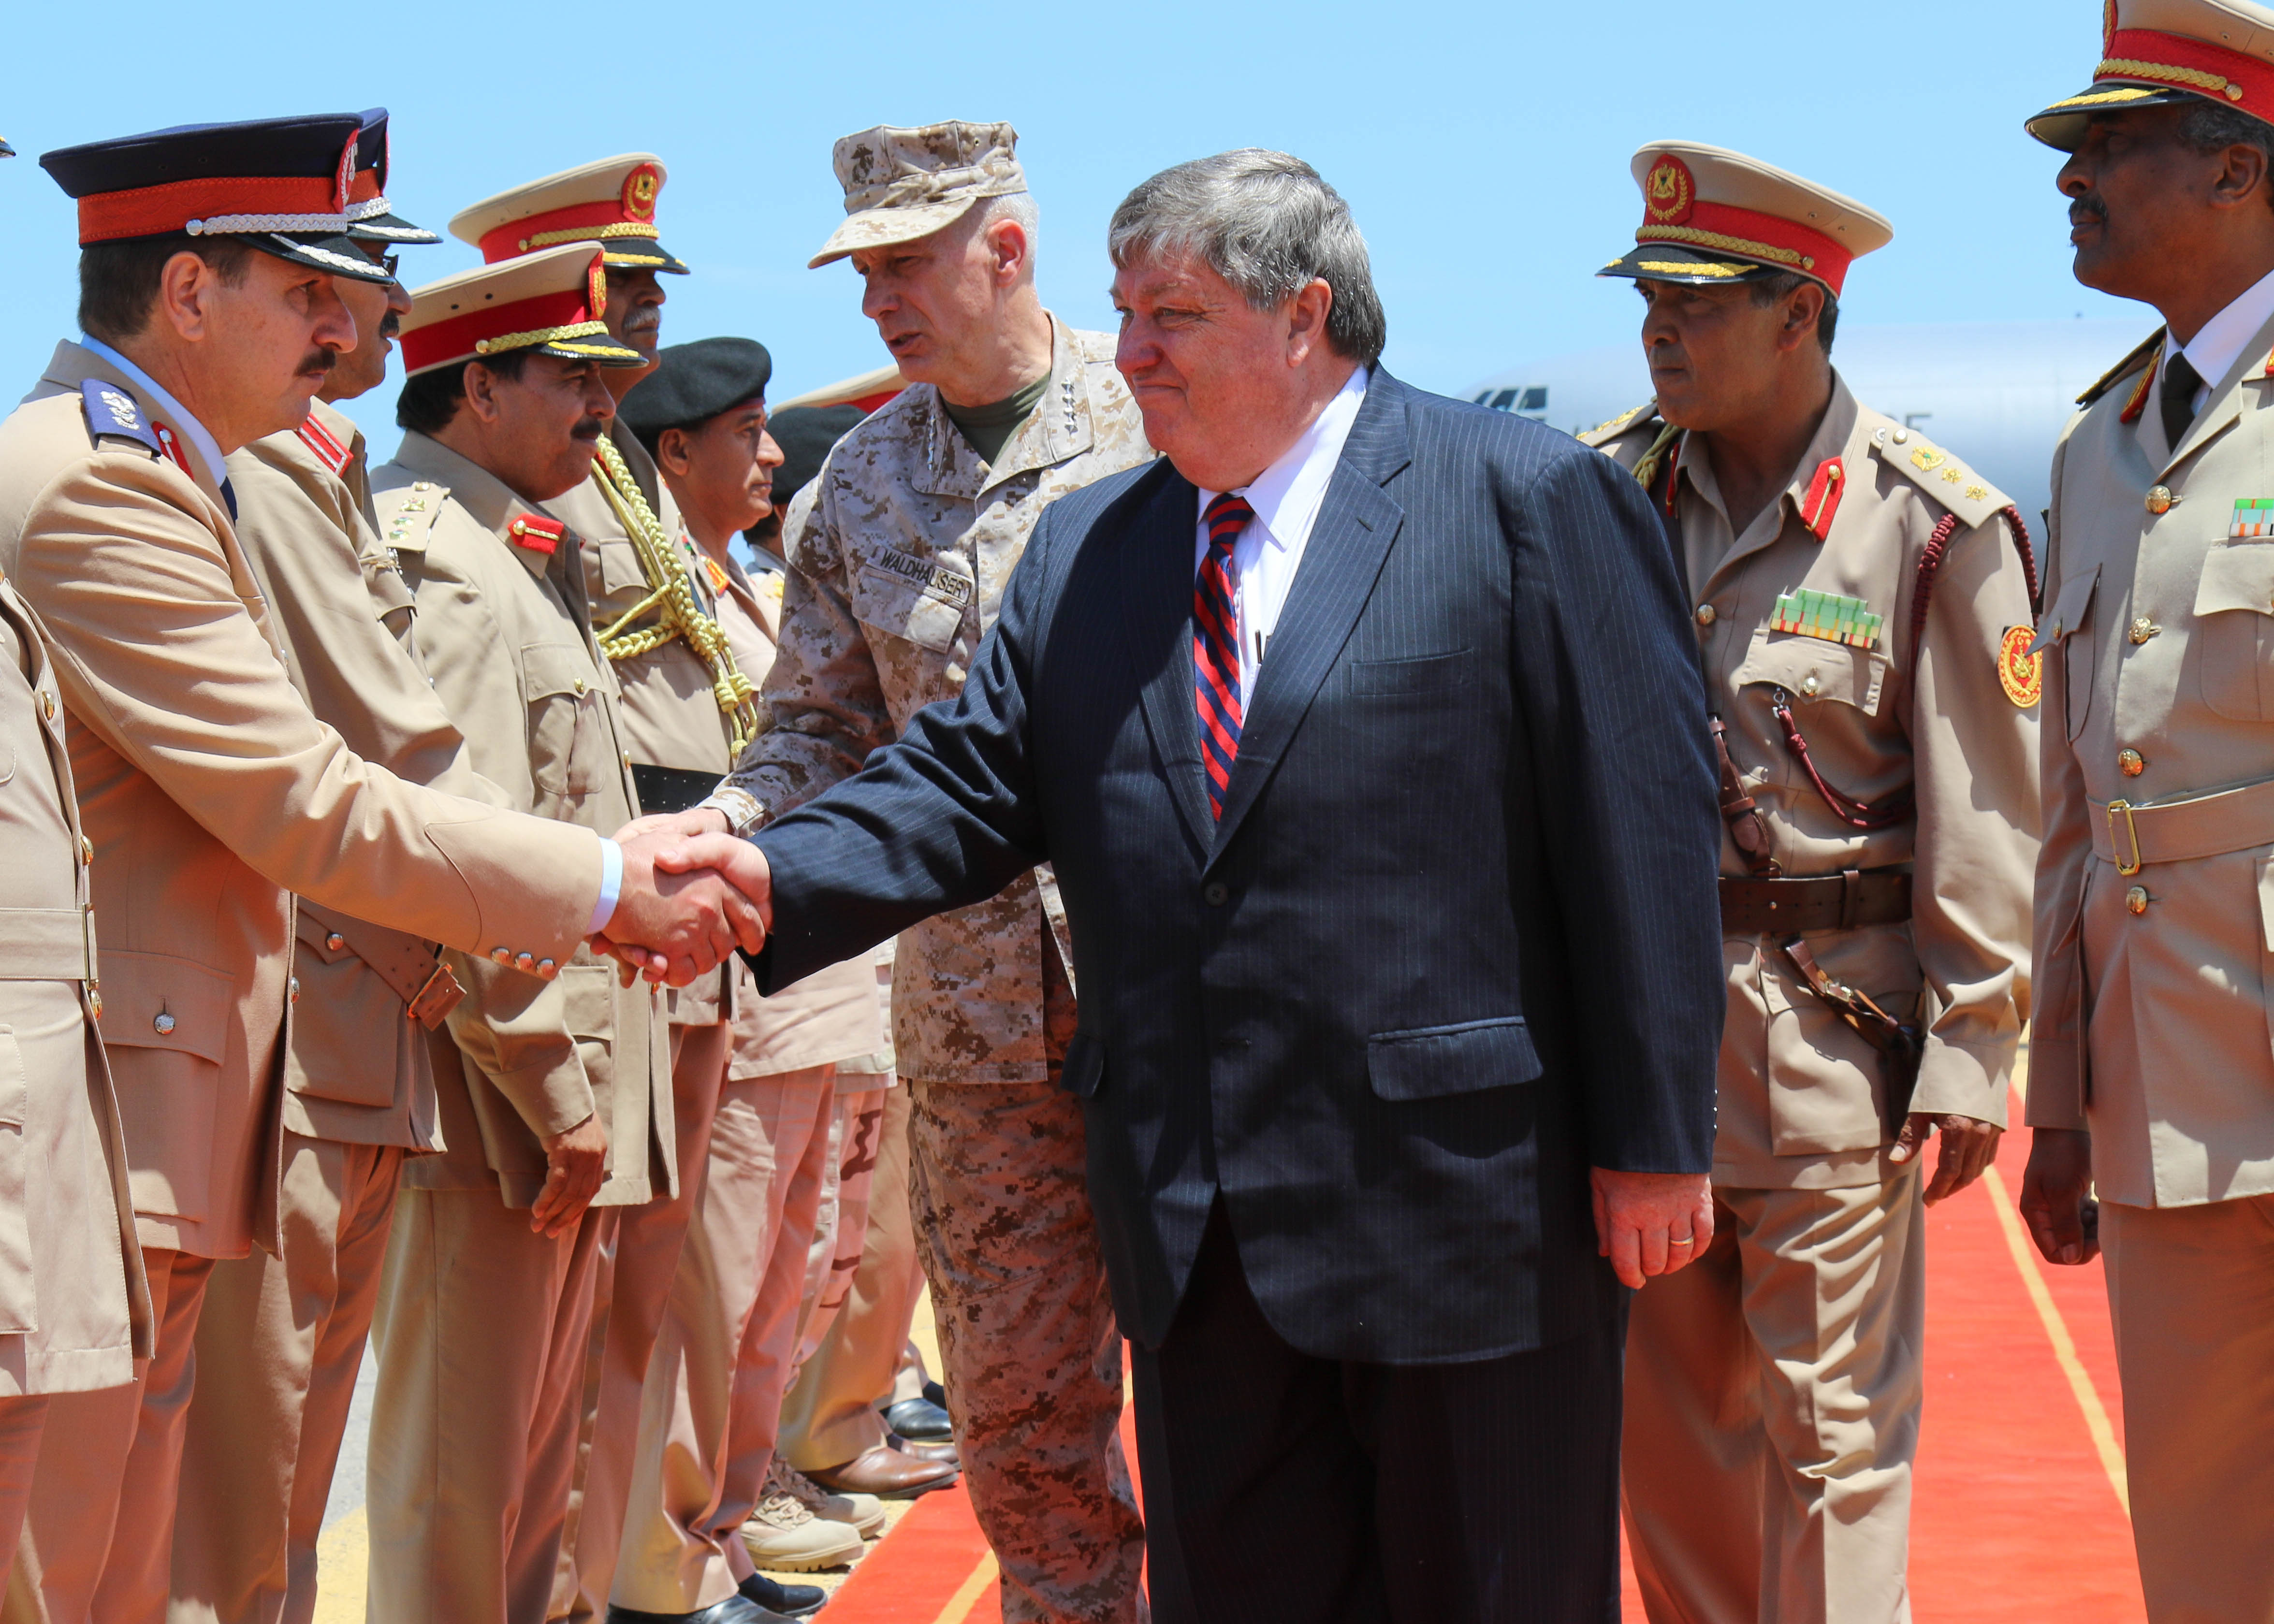 U.S. Marine Corps Gen. Thomas D. Waldhauser, Commander, U.S. Africa Command (USAFRICOM) and Amb. Peter Bodde, U.S. Ambassador to Libya greet members of the Libyan Army during their recent visit to Libya to meet with the Prime Minister of Libya's Unity Government, Fayez al-Sarraj in Tripoli, Libya May 23, 2017. This marks the first time a a high ranking U.S. military official has been in Libya since 2014.